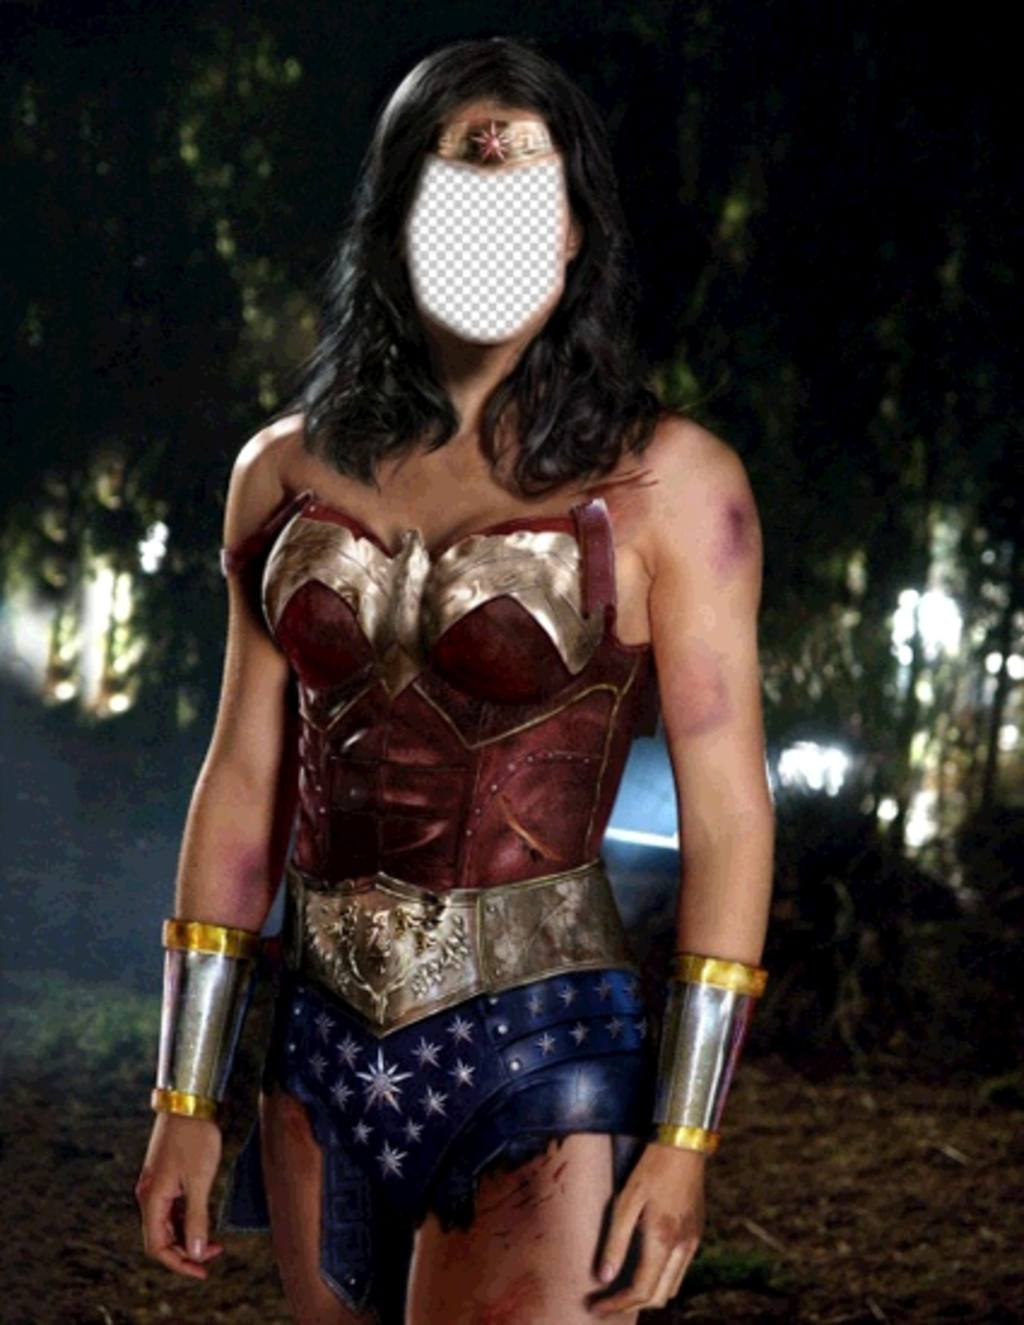 Photomontage to become in Wonder Woman uploading your photo